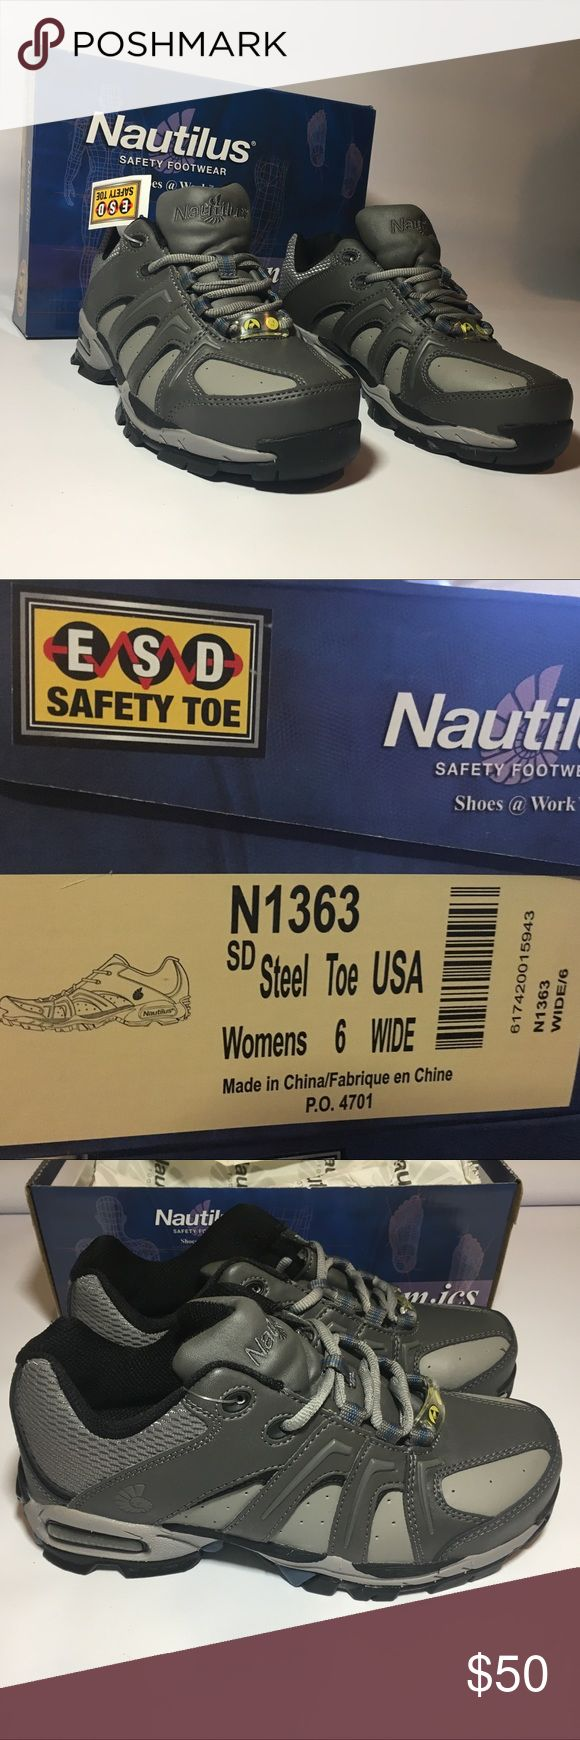 Nautilus Sz 6 Wide work Safety Shoes Brand new in box  Womens size  6 Wide  Model N1363  Color is Gray with black trim  Features:  ASTM F2413 protective toe classification Rubber outsole with Molded EVA midsole ASTM F2413 static-dissipative standard Leather and nylon combination uppers Athletech EVA Midsole for lightweight comfort Removable Athletech polyurethane sock liner PROTECTIVE TOE Impact testing determines the amount of protection to the toe under various foot pounds of force. Our…